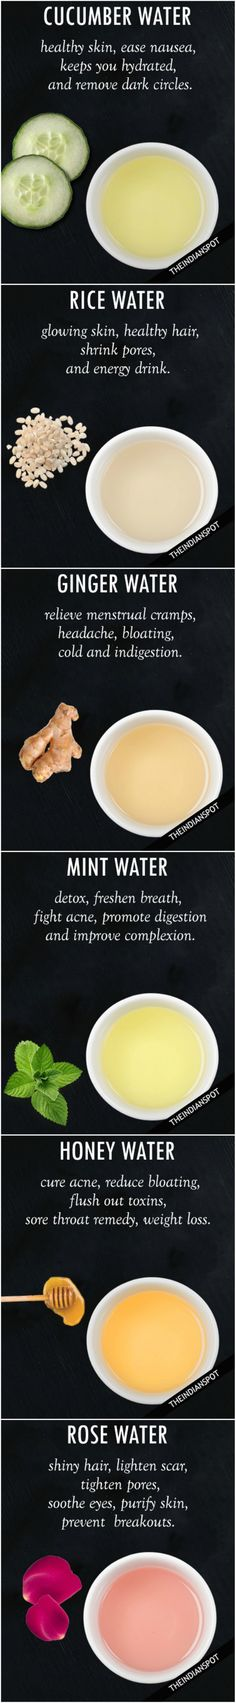 best water remedies